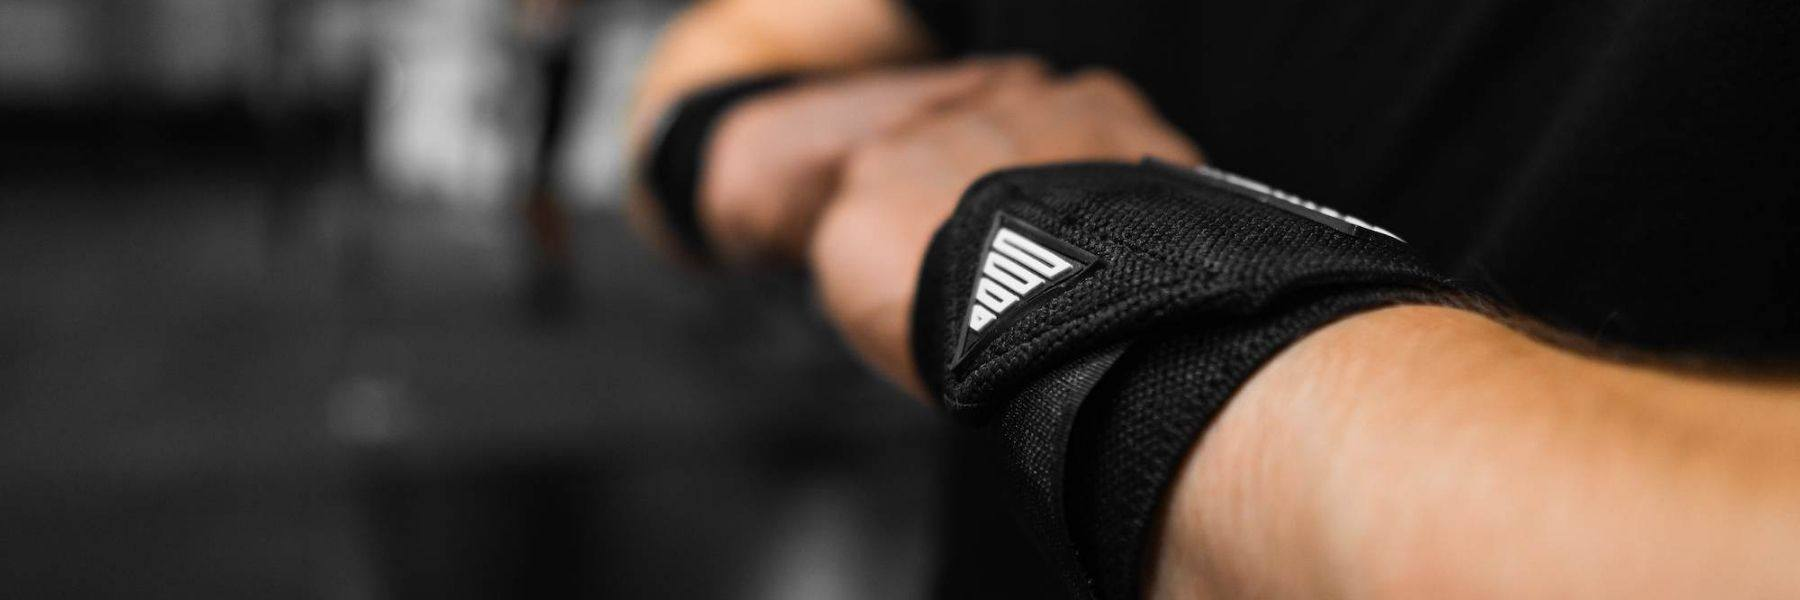 Maximum wrist stability during training - the Power Wrist Wraps by GORNATION